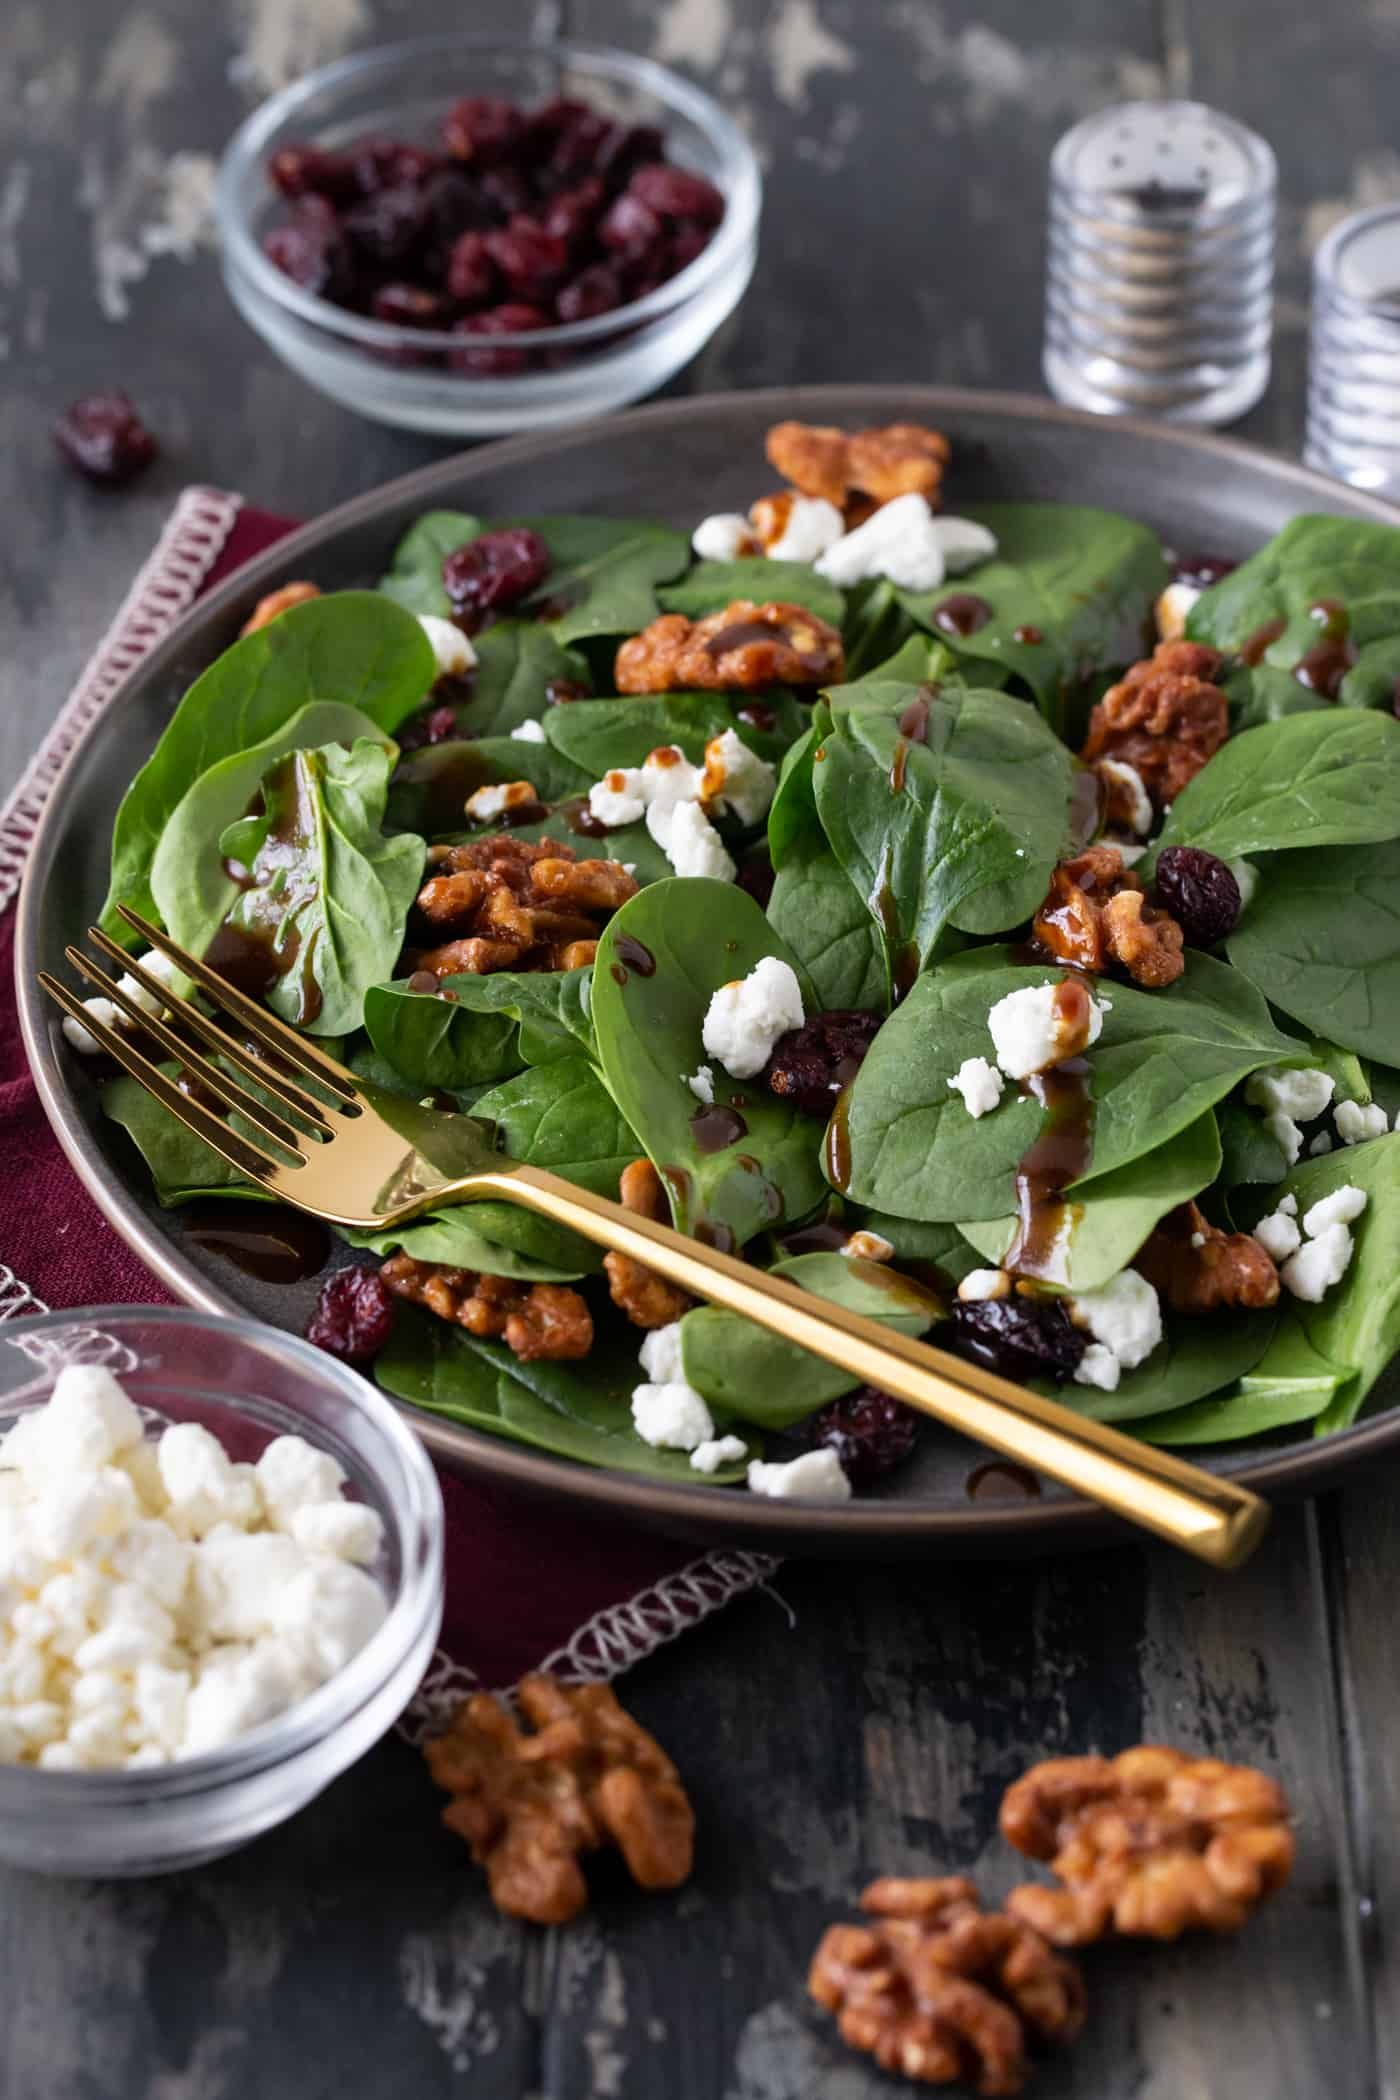 One Bite Of This Spinach Salad With Goat Cheese Craisins